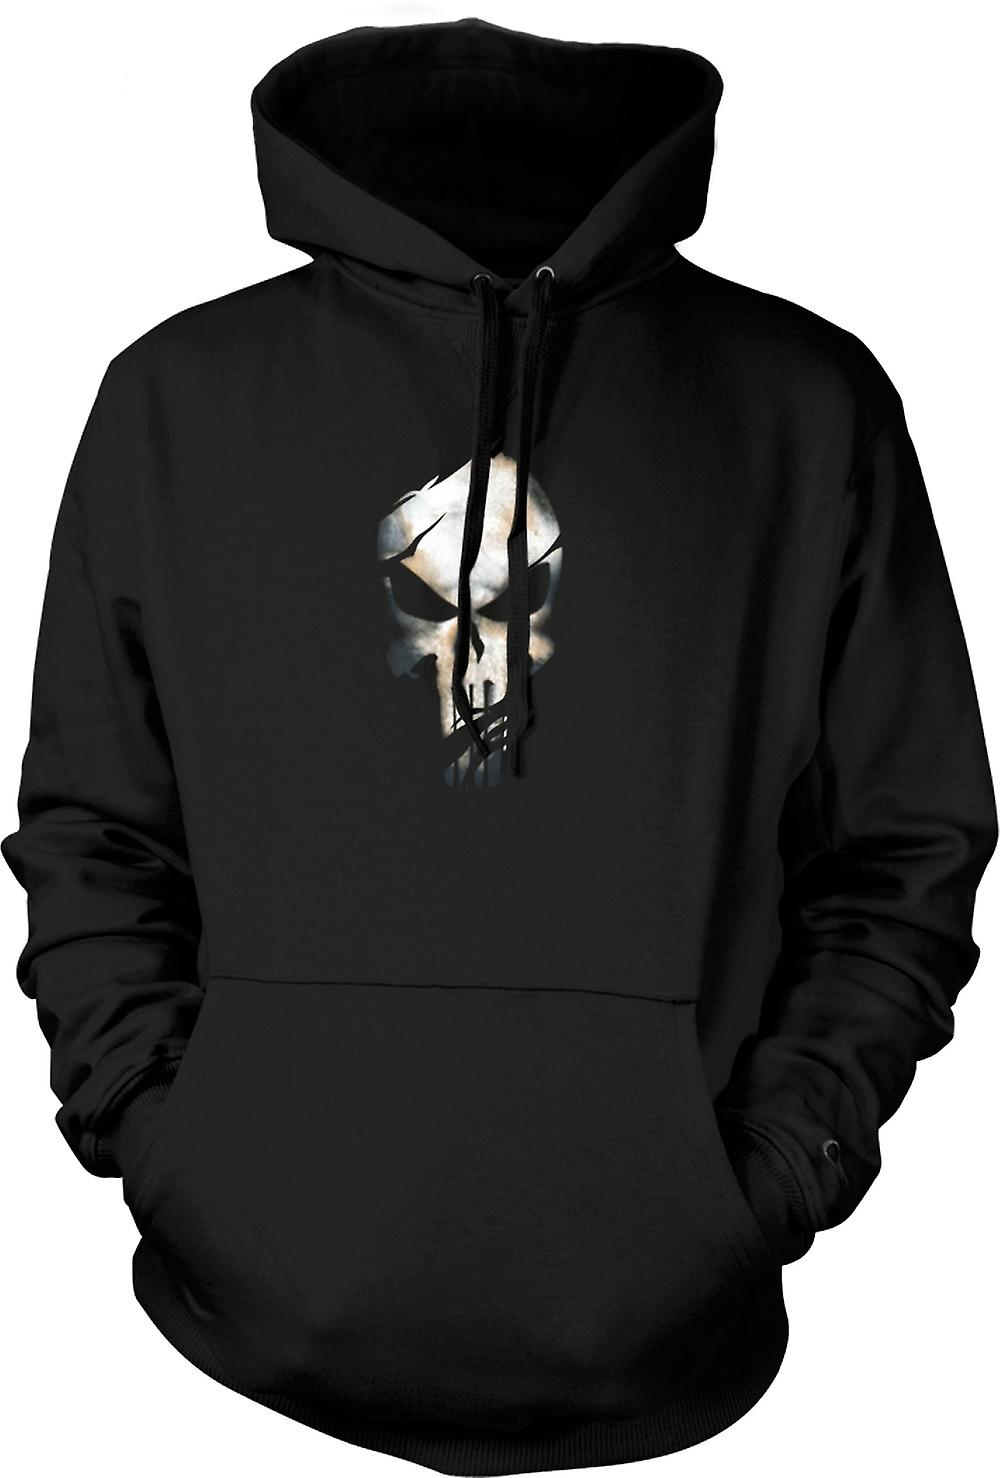 Barn Hoodie - The Punisher - rippade effekt